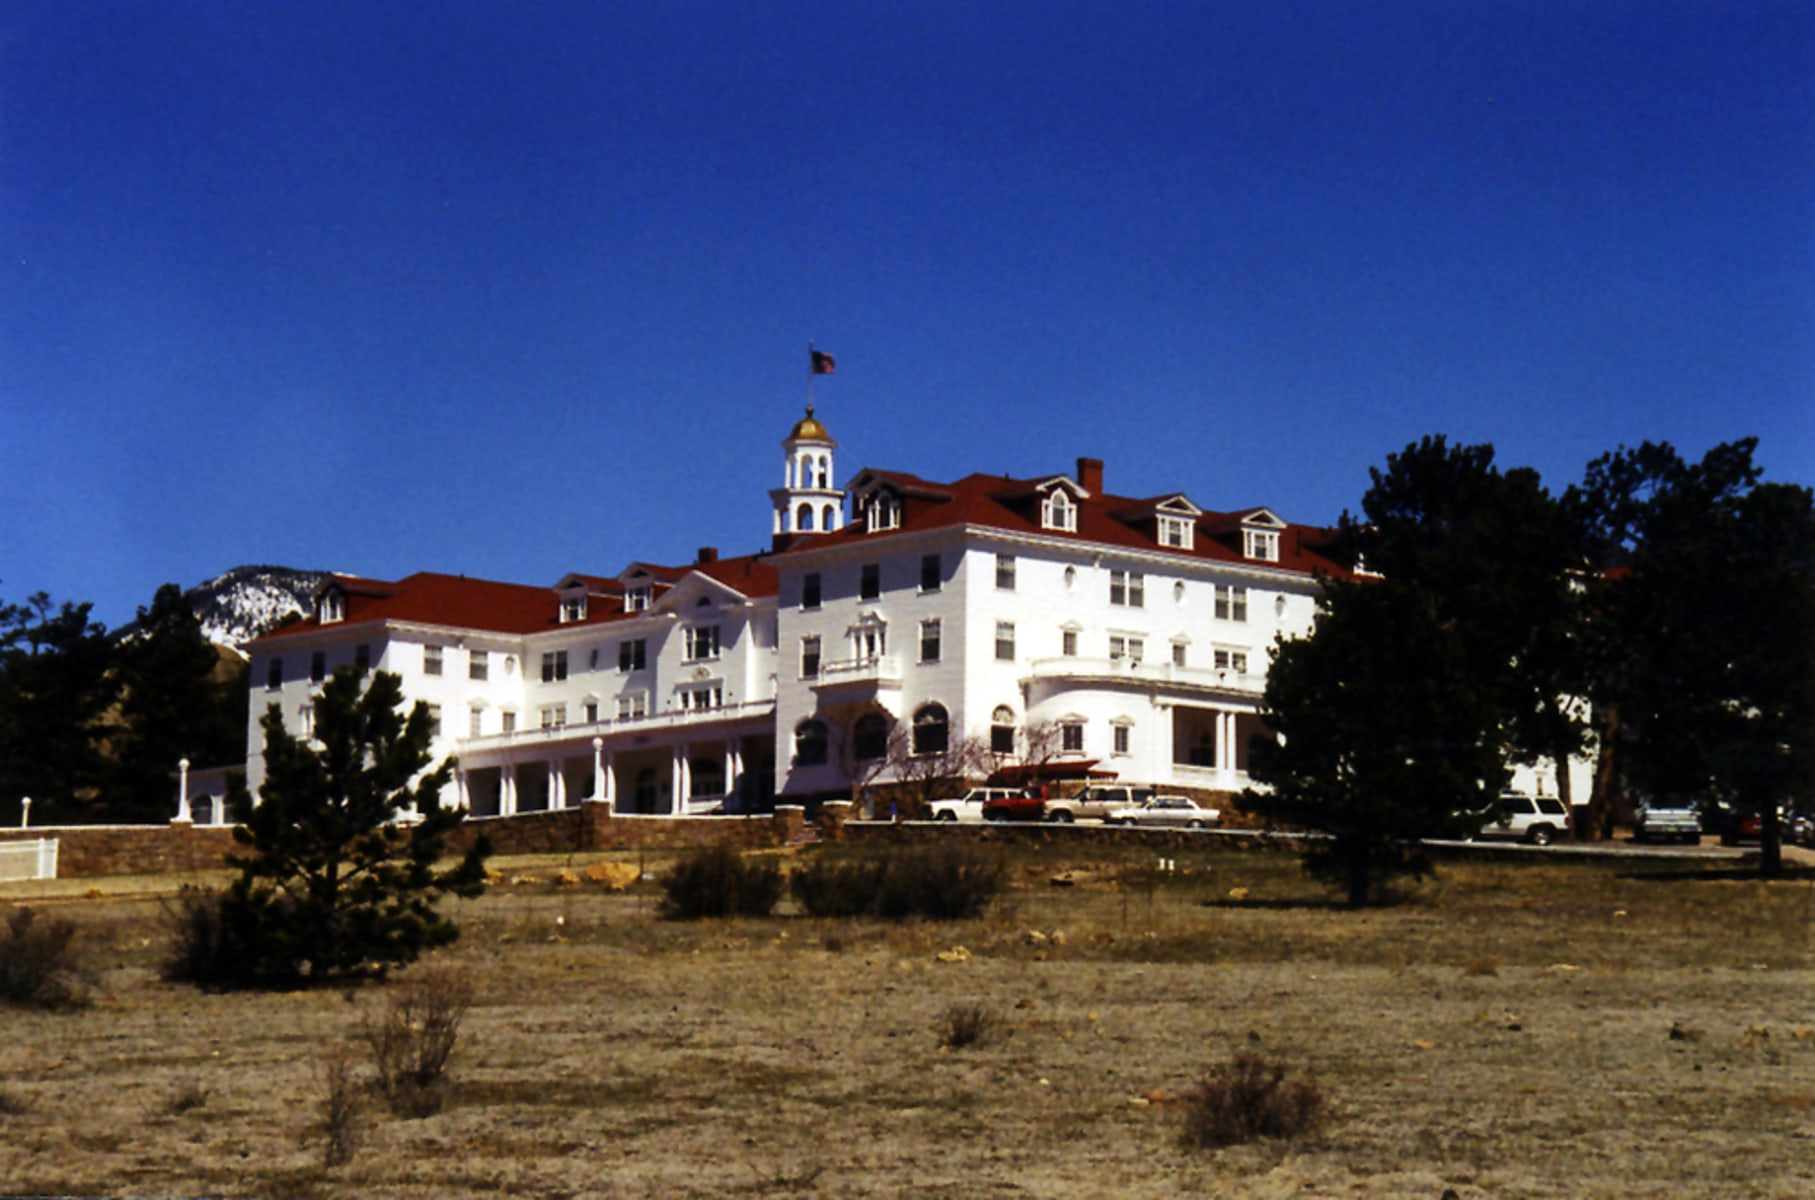 10 of the most haunted places in the US - TODAY.com